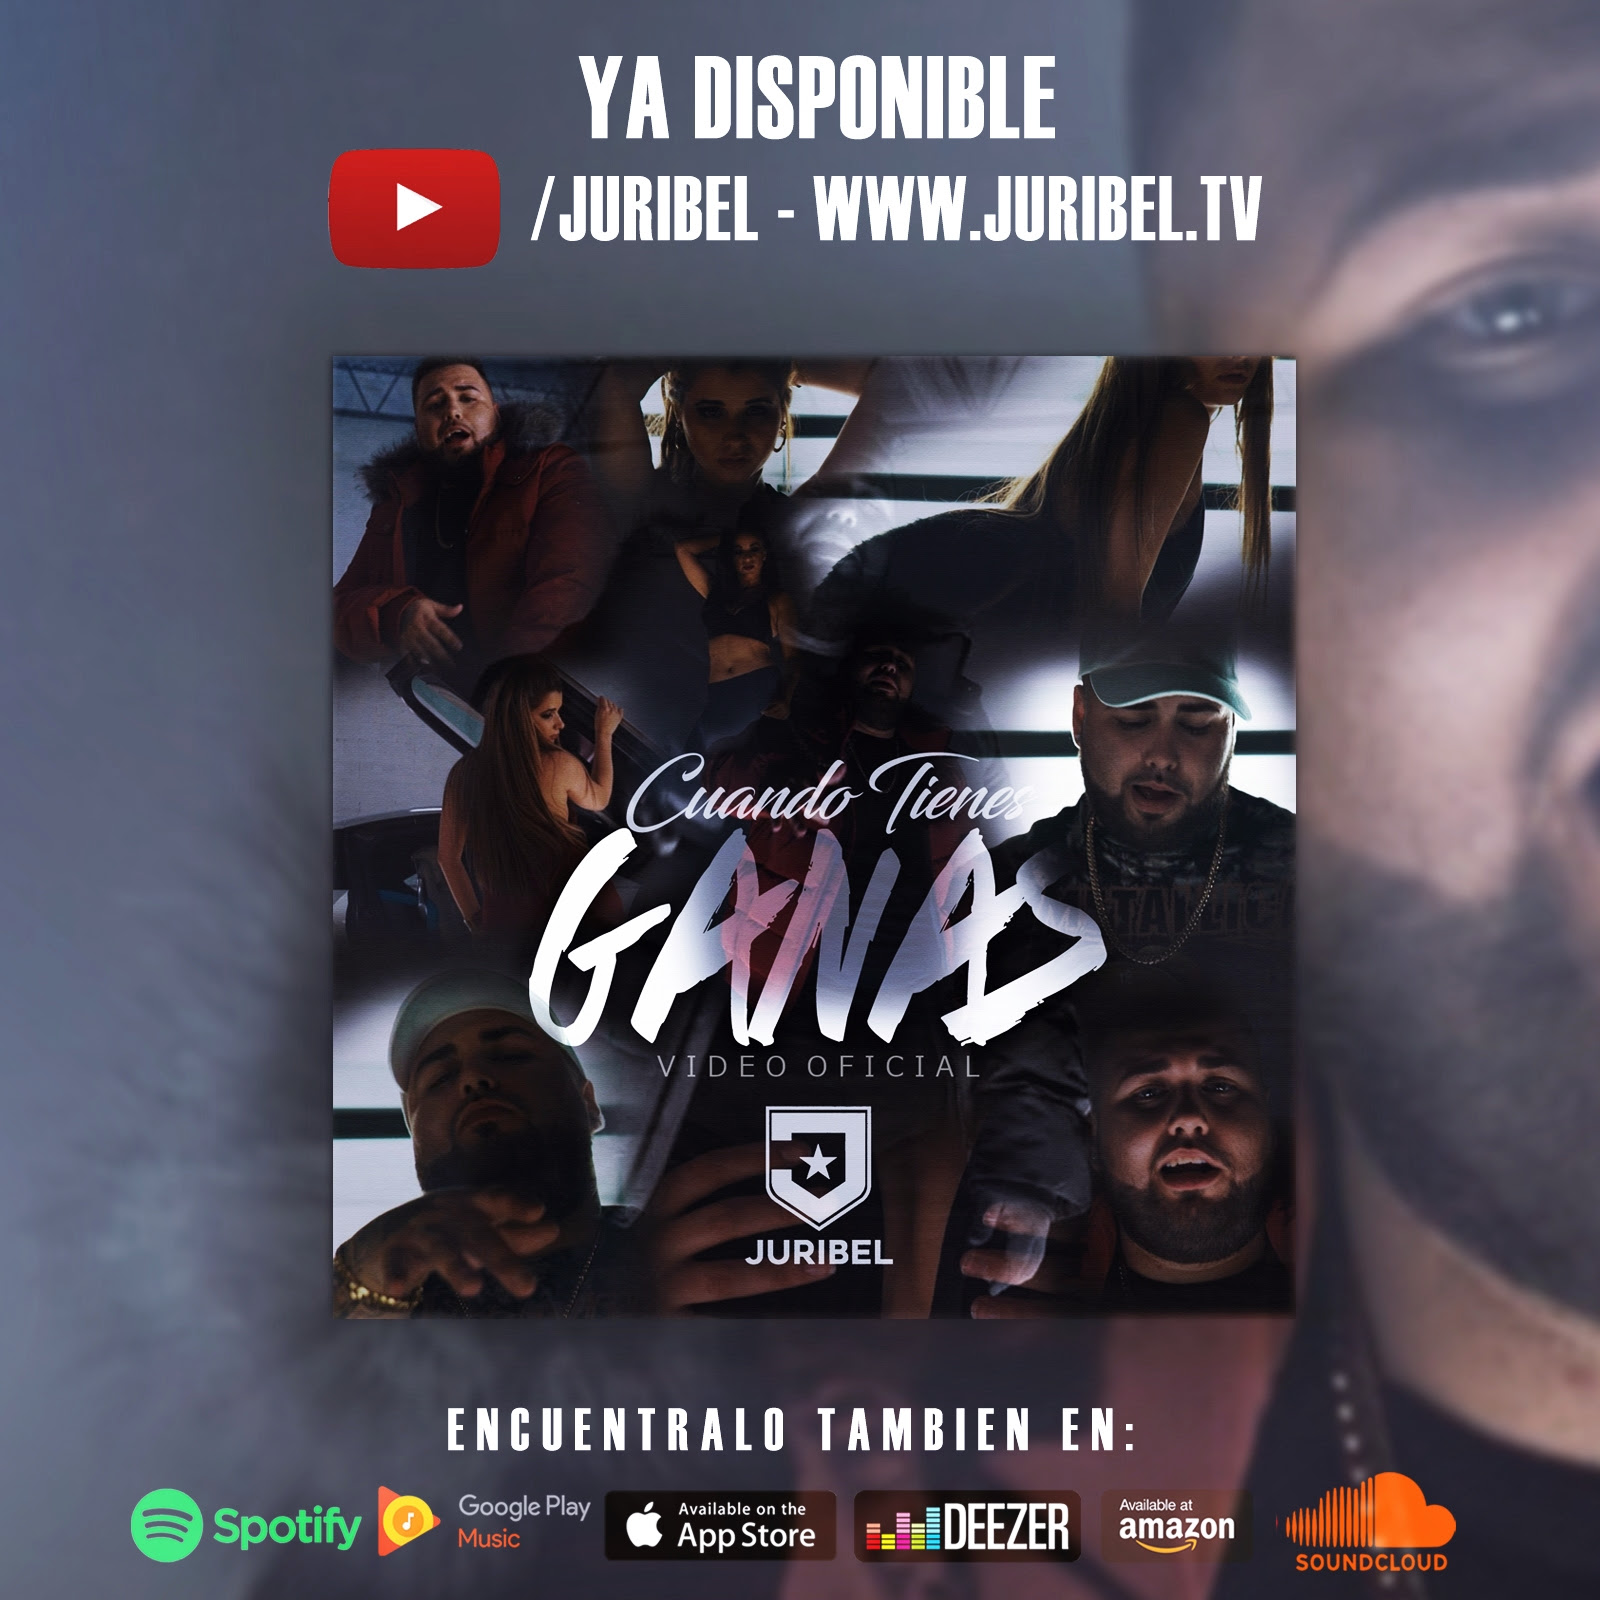 Disponible Juribel Cuando Tienes Ganas Video Oficial